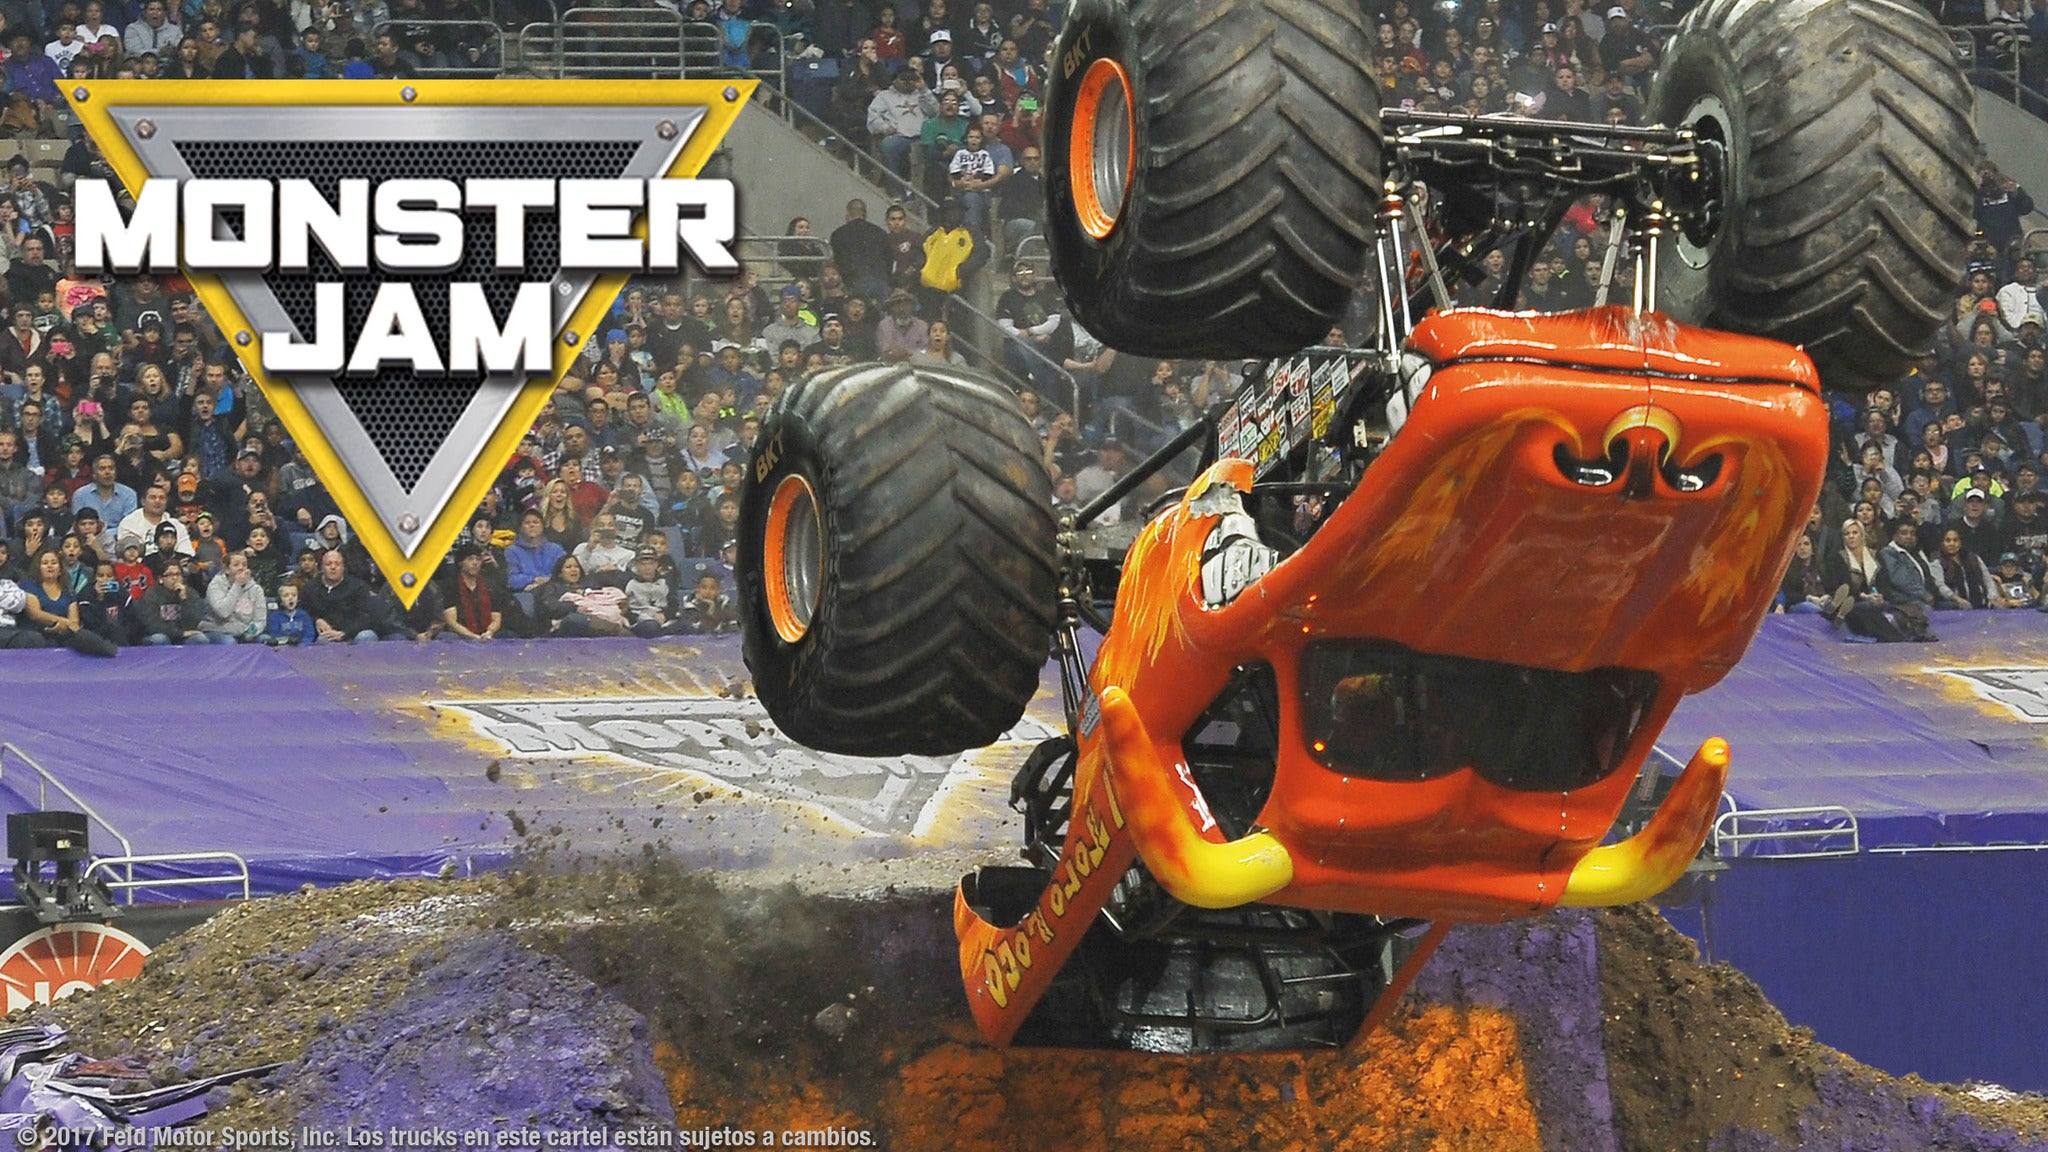 Monster Jam at Peoria Civic Center